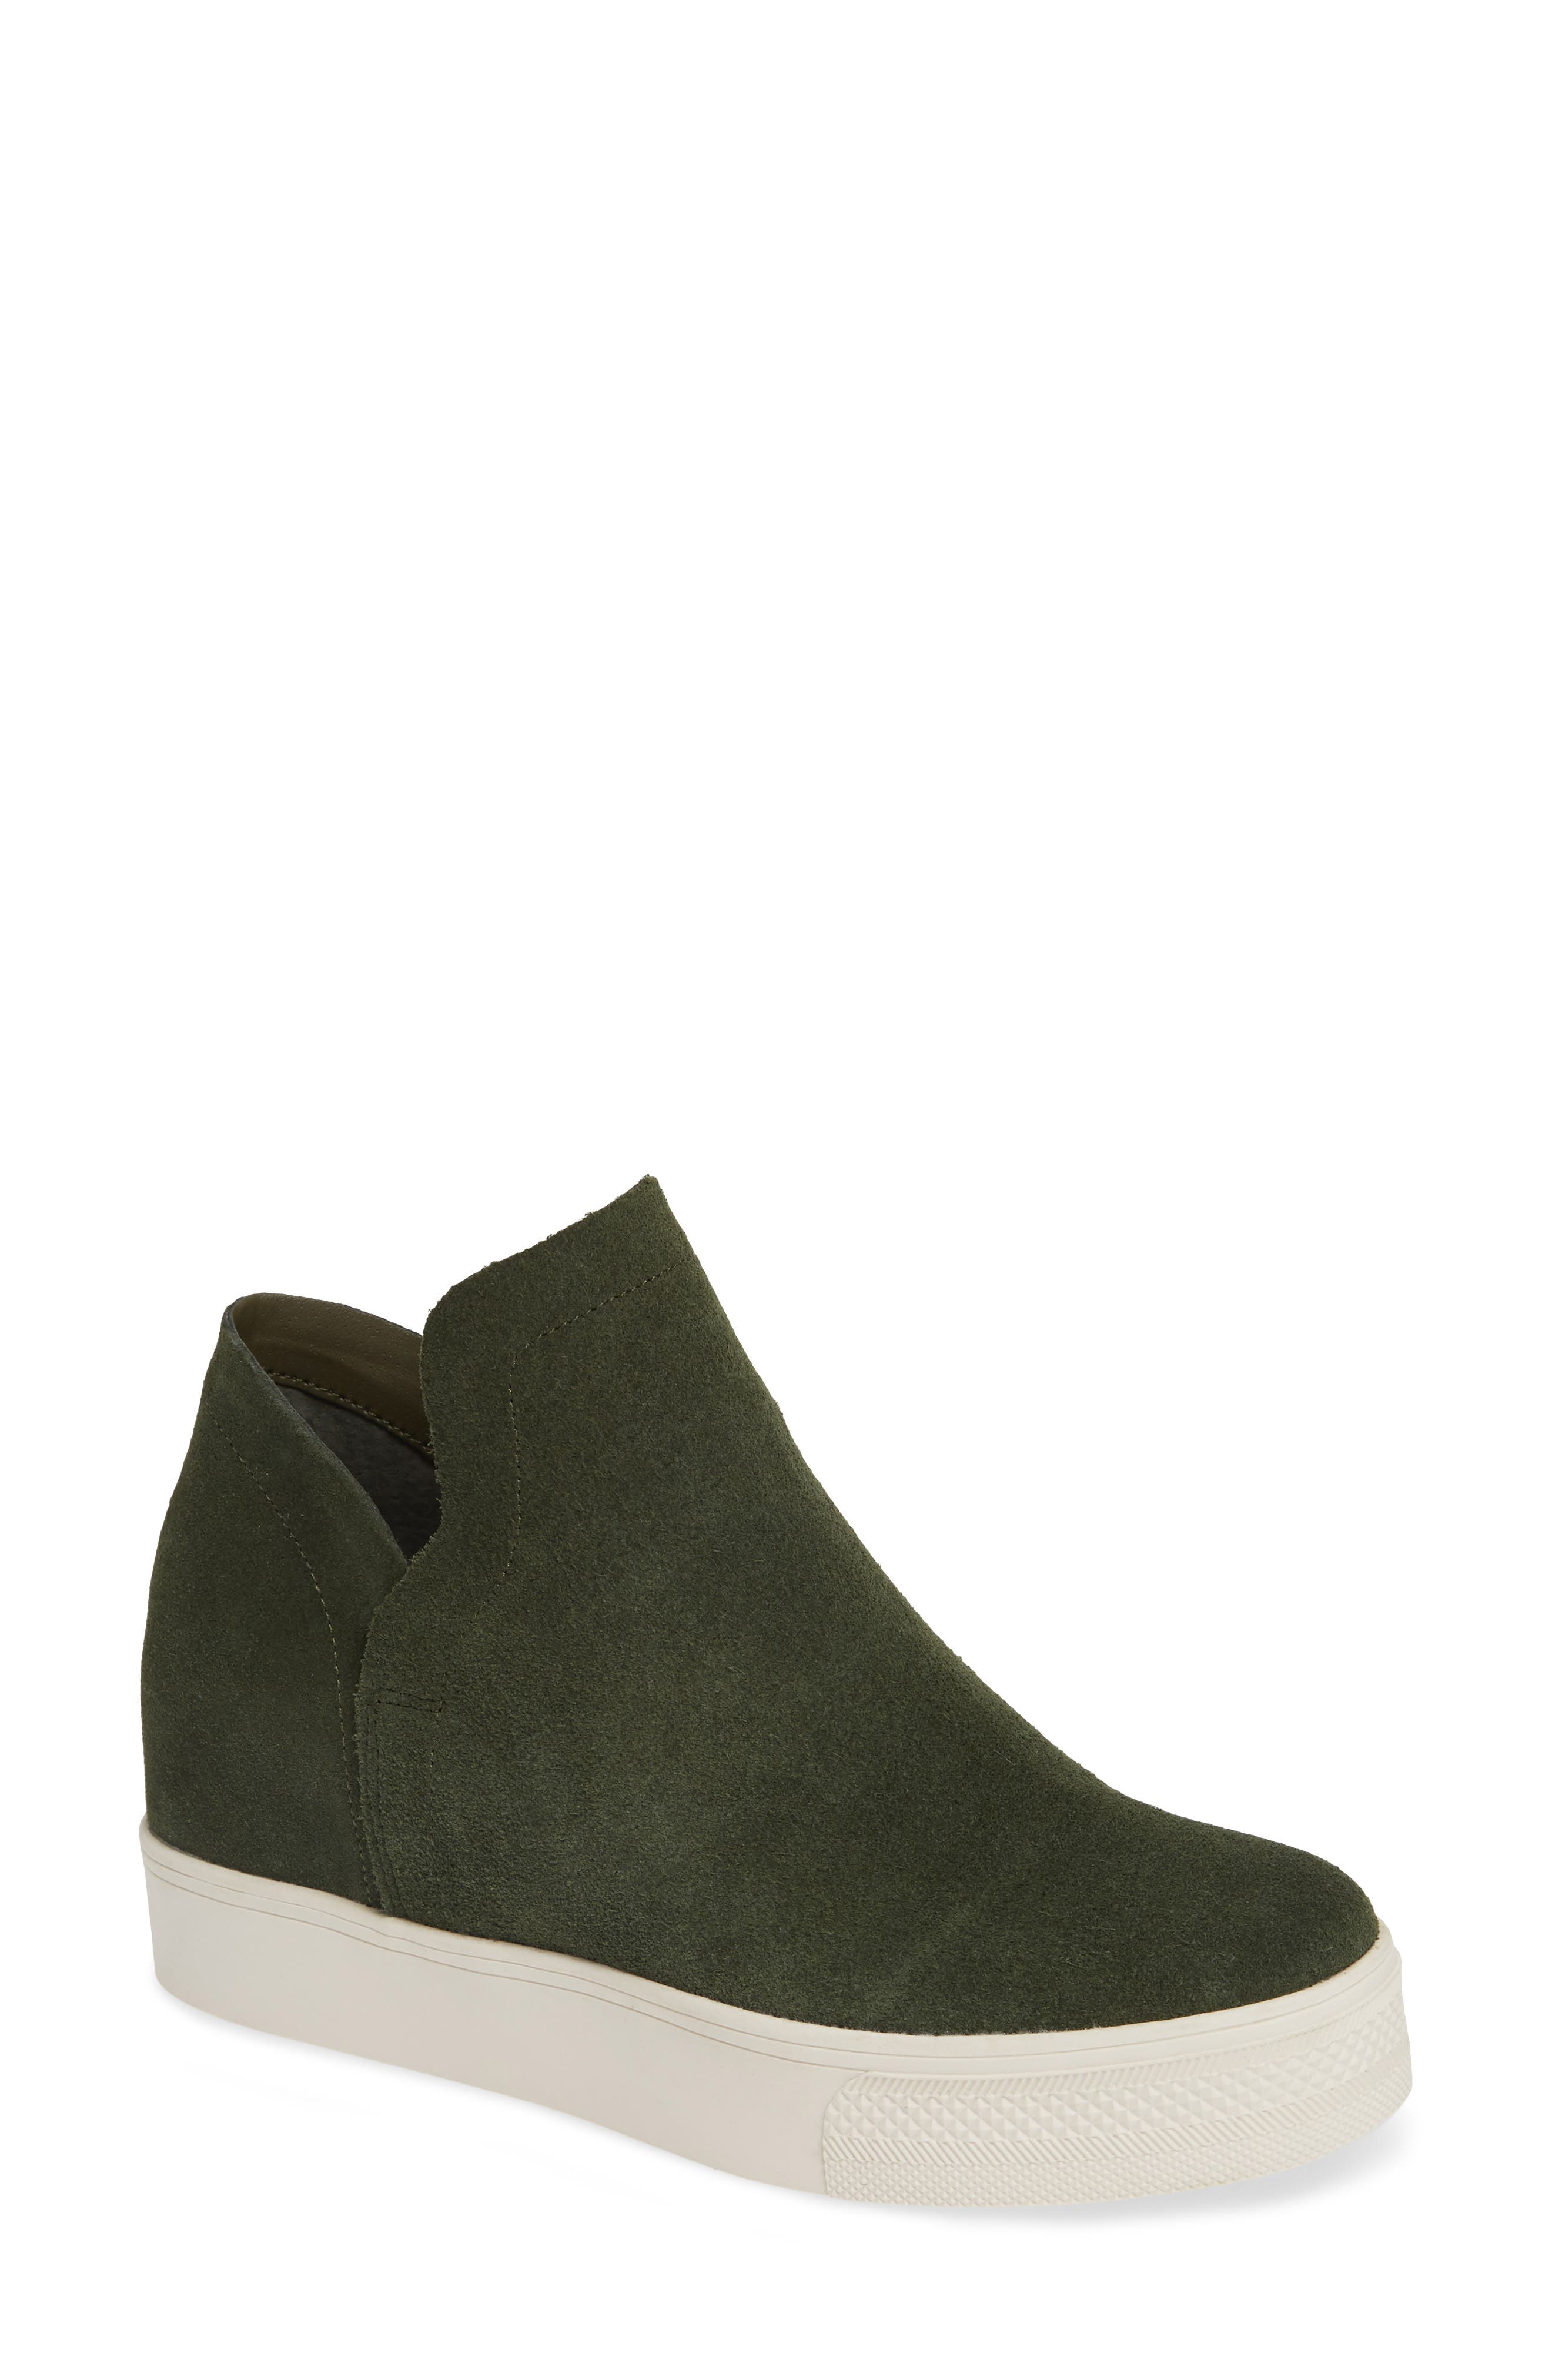 Wrangle Sneaker,                             Main thumbnail 1, color,                             OLIVE SUEDE